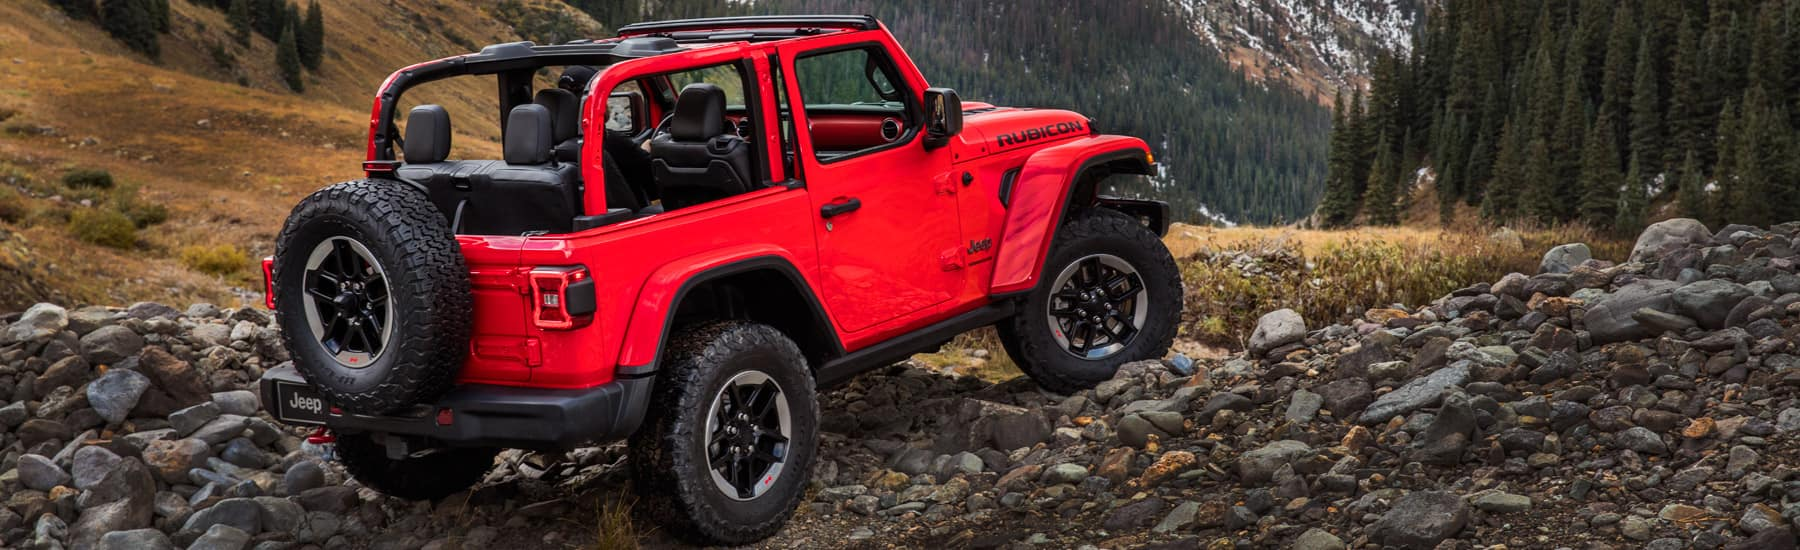 2018 jeep jl owners manual